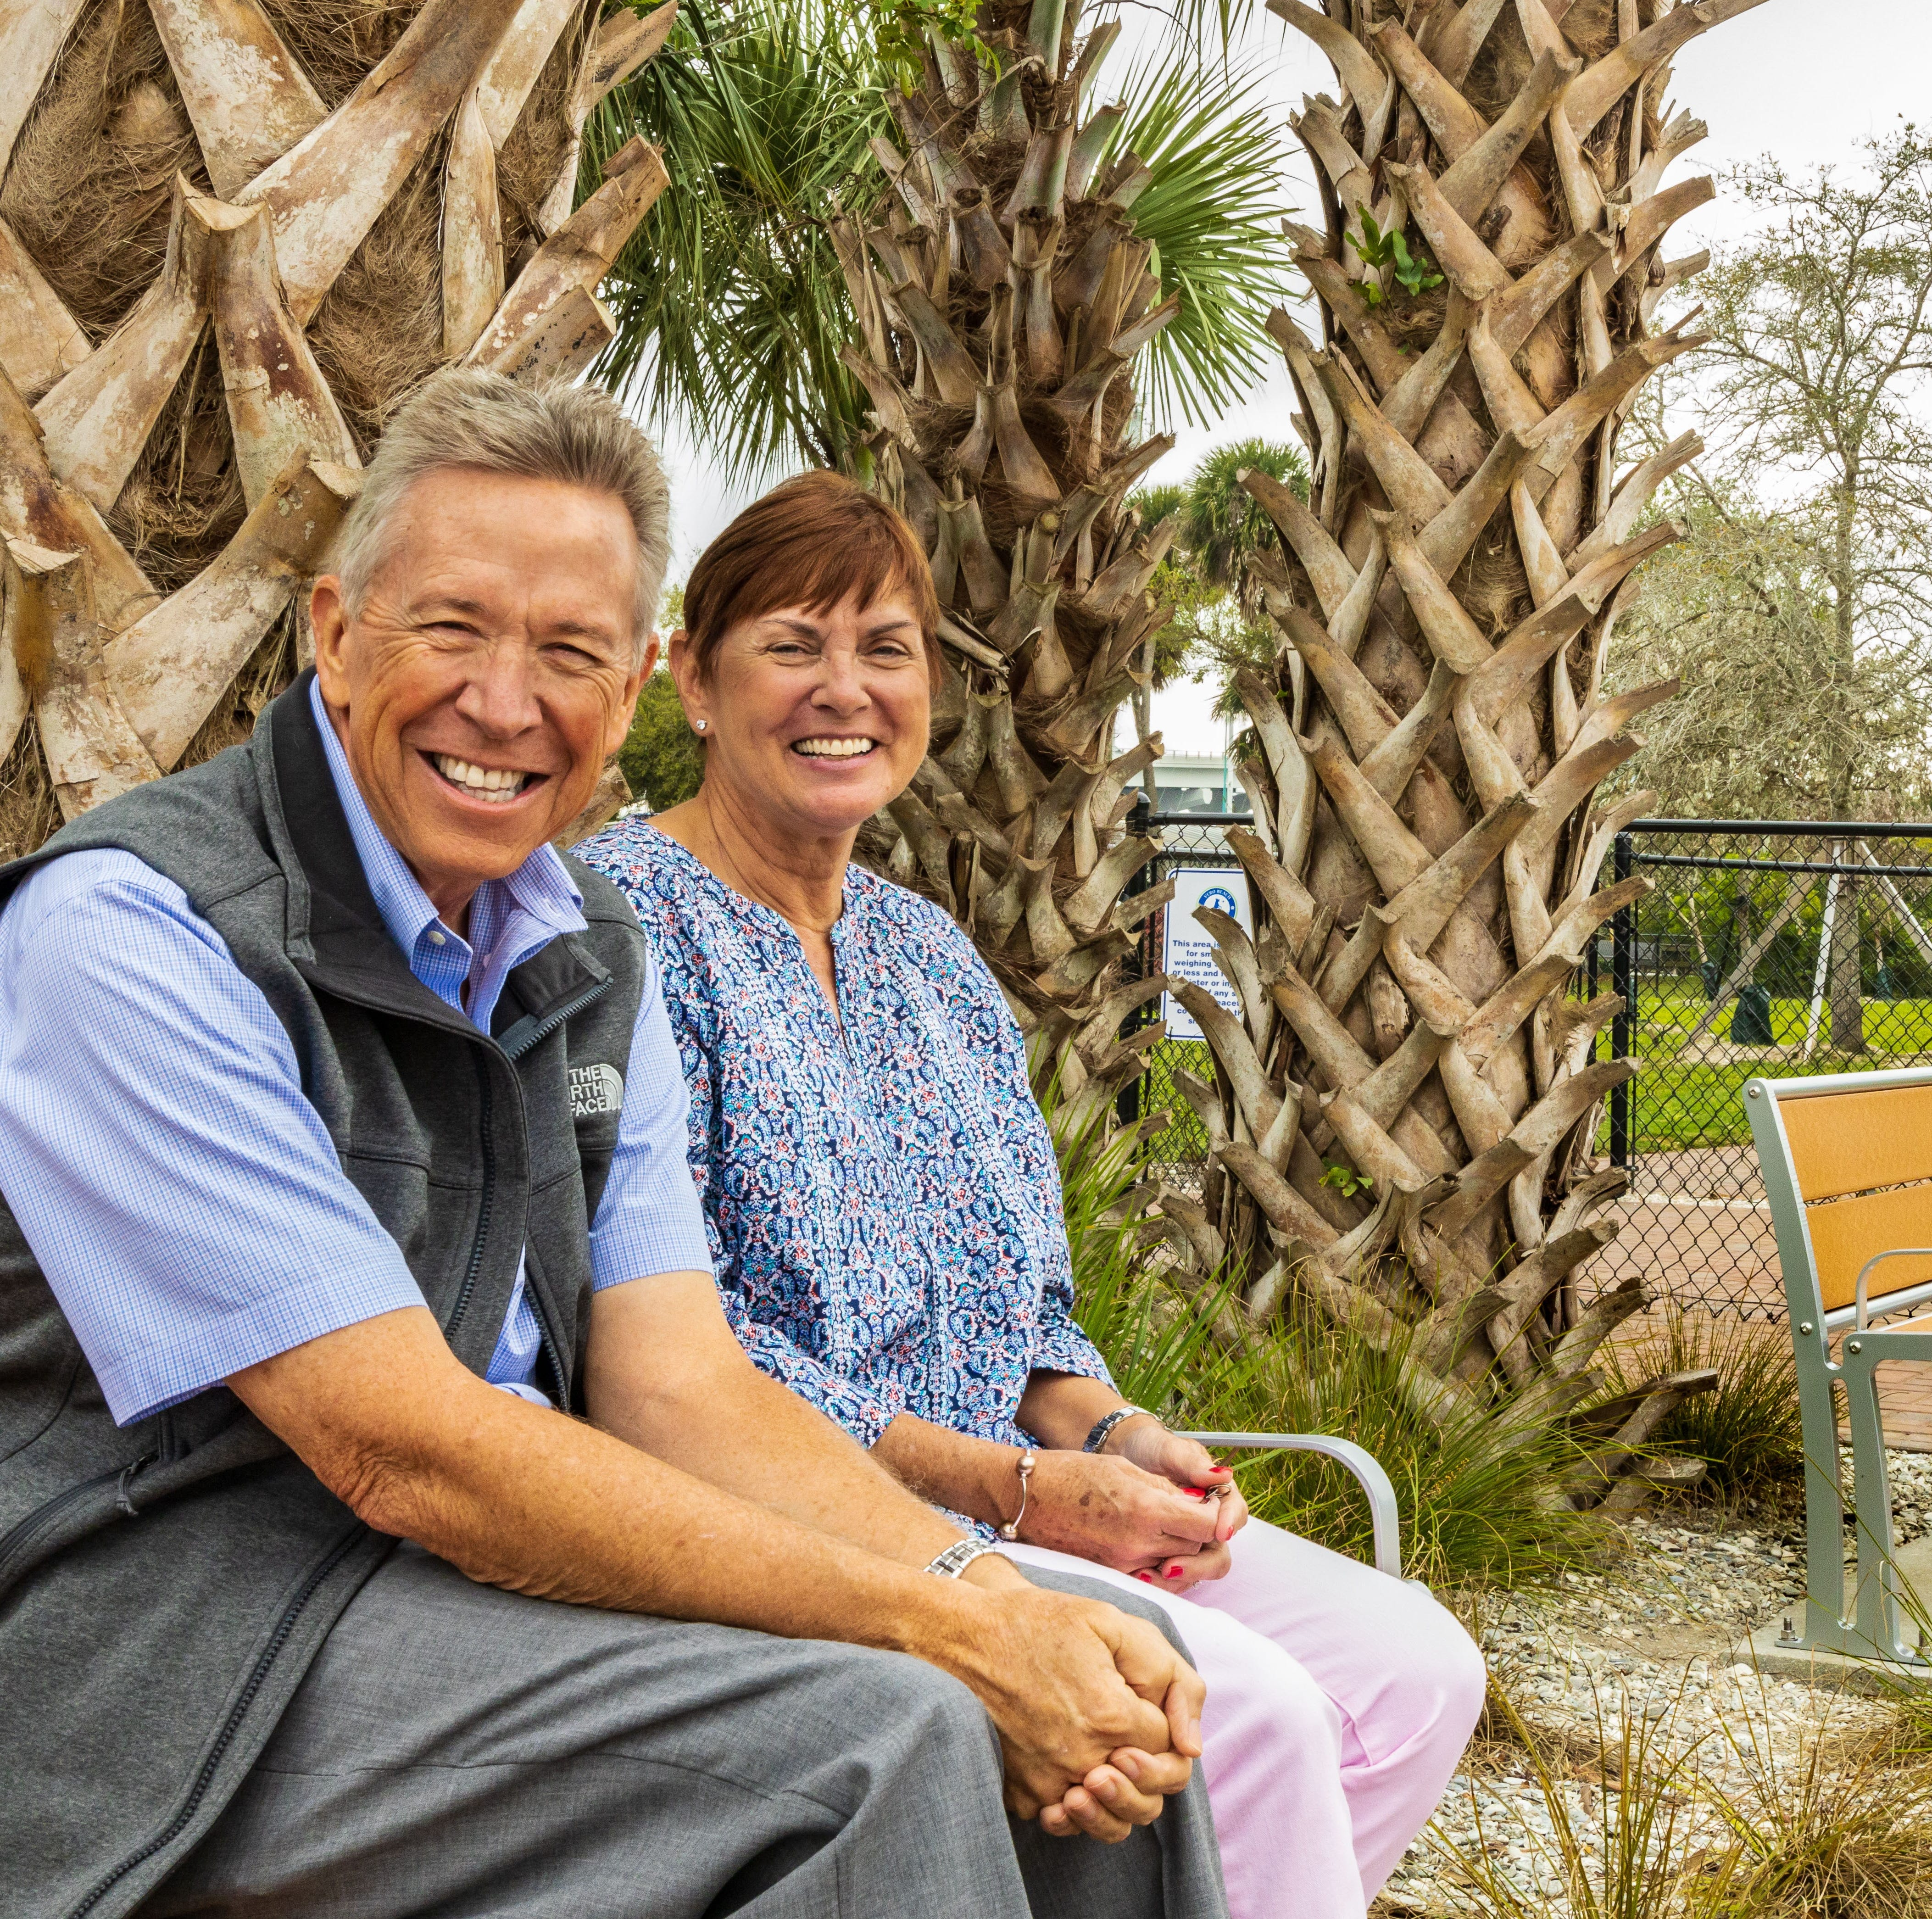 Vero Beach Centennial: 'Generous donors' Kevin and Kathy Spittle help shape Vero Beach Dog Park